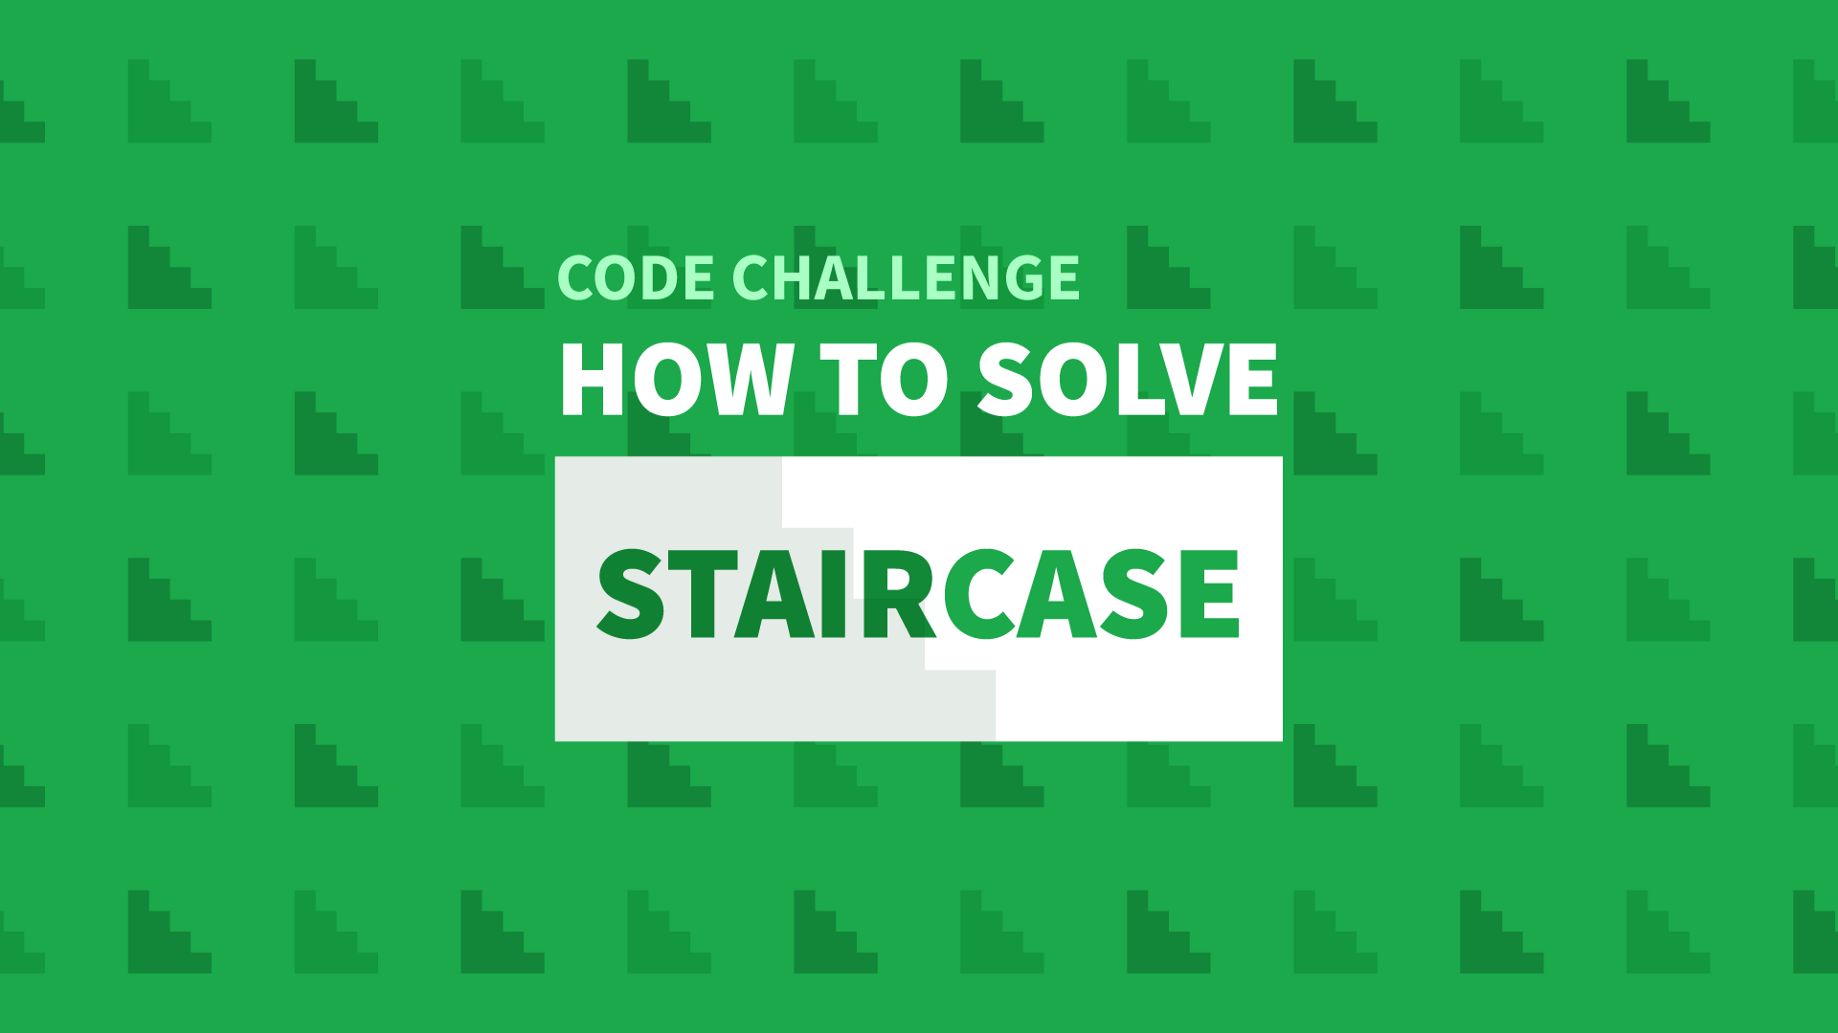 How To Solve The Staircase Code Challenge - Manny Codes - Medium